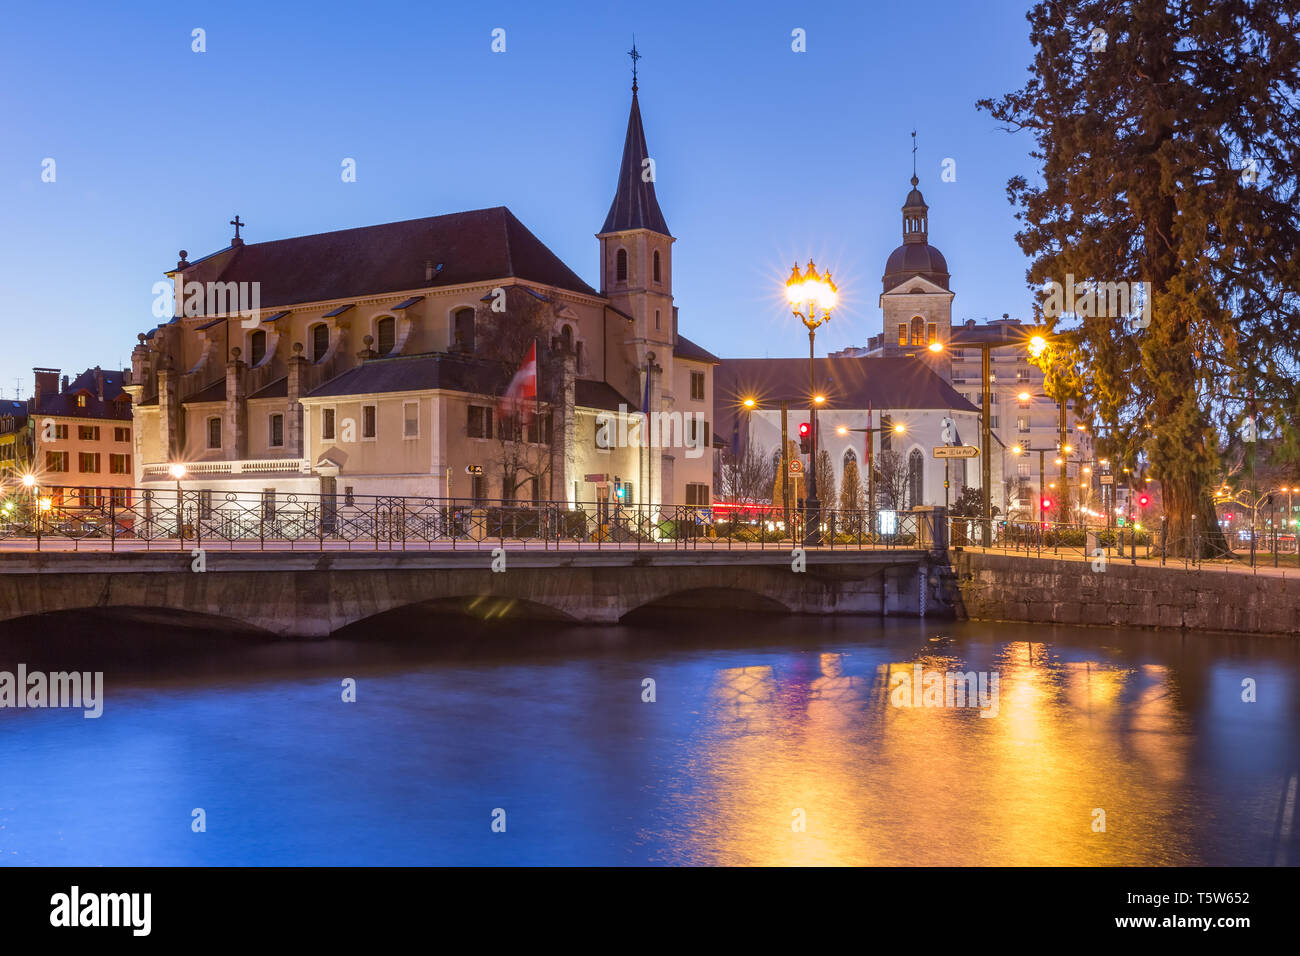 Annecy, called Venice of the Alps, France Stock Photo